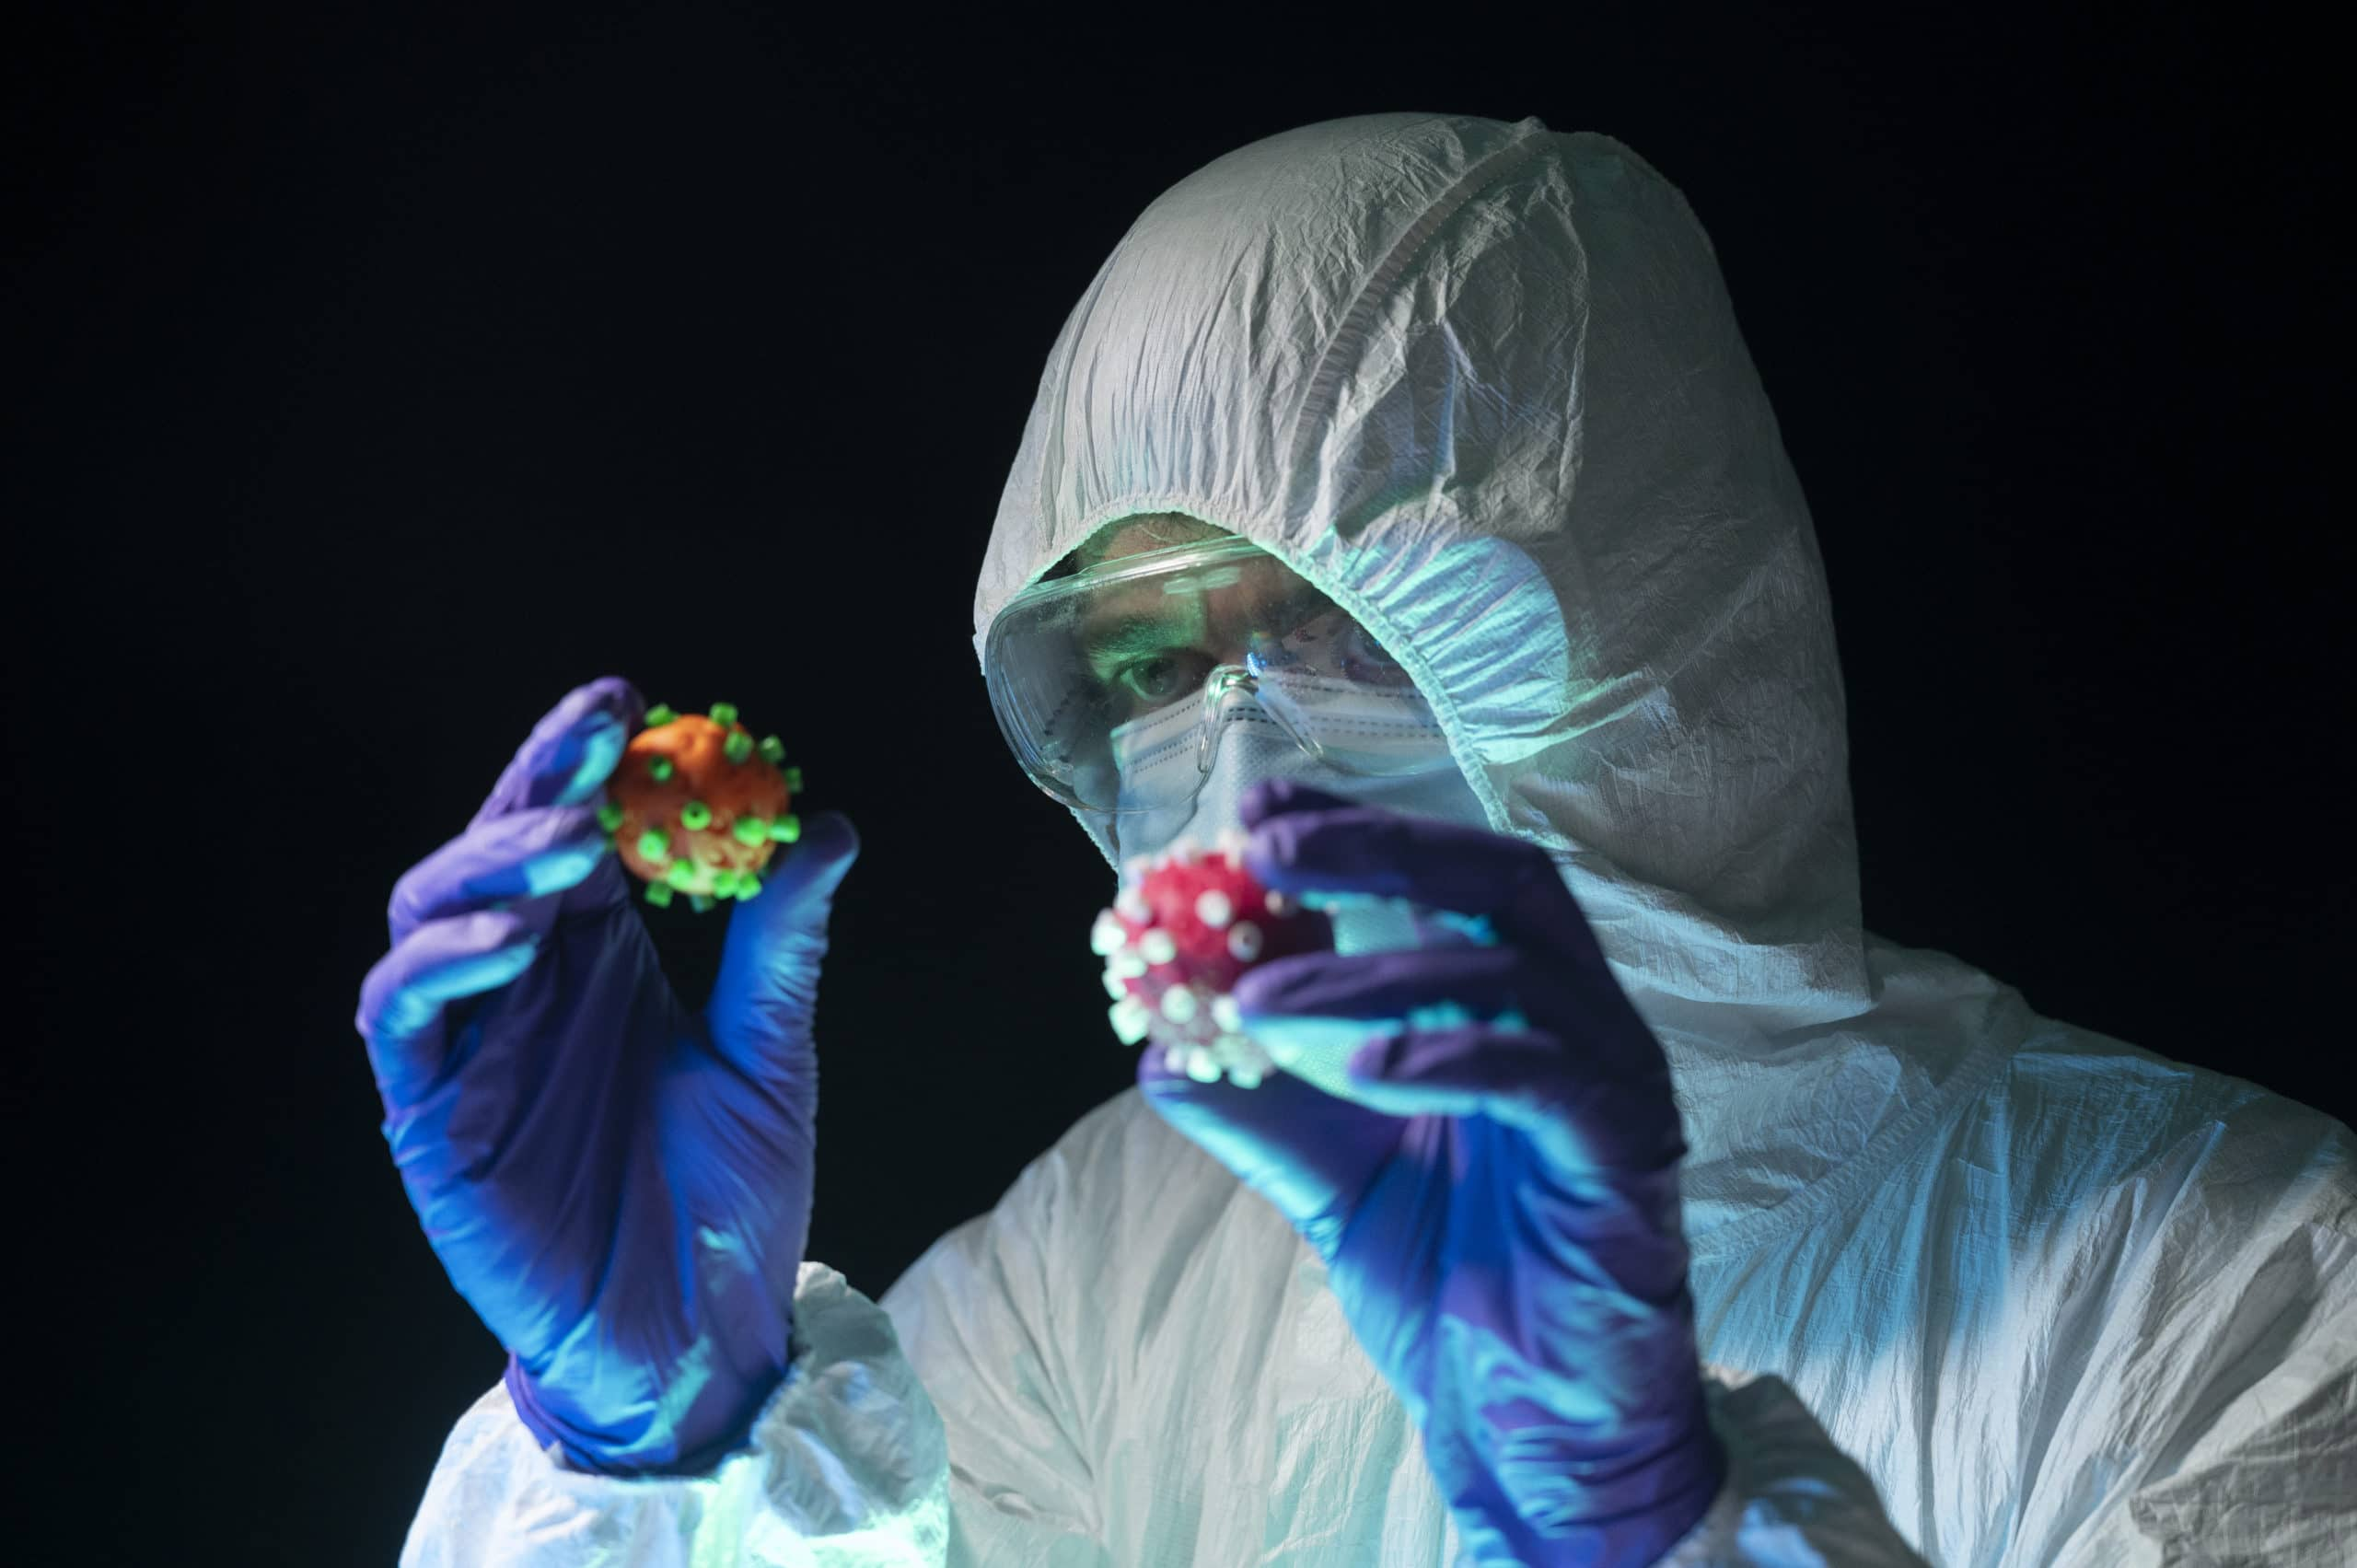 Scientist in a protective suit holds and compares two different Coronavirus of different color in his hands. Creative image.